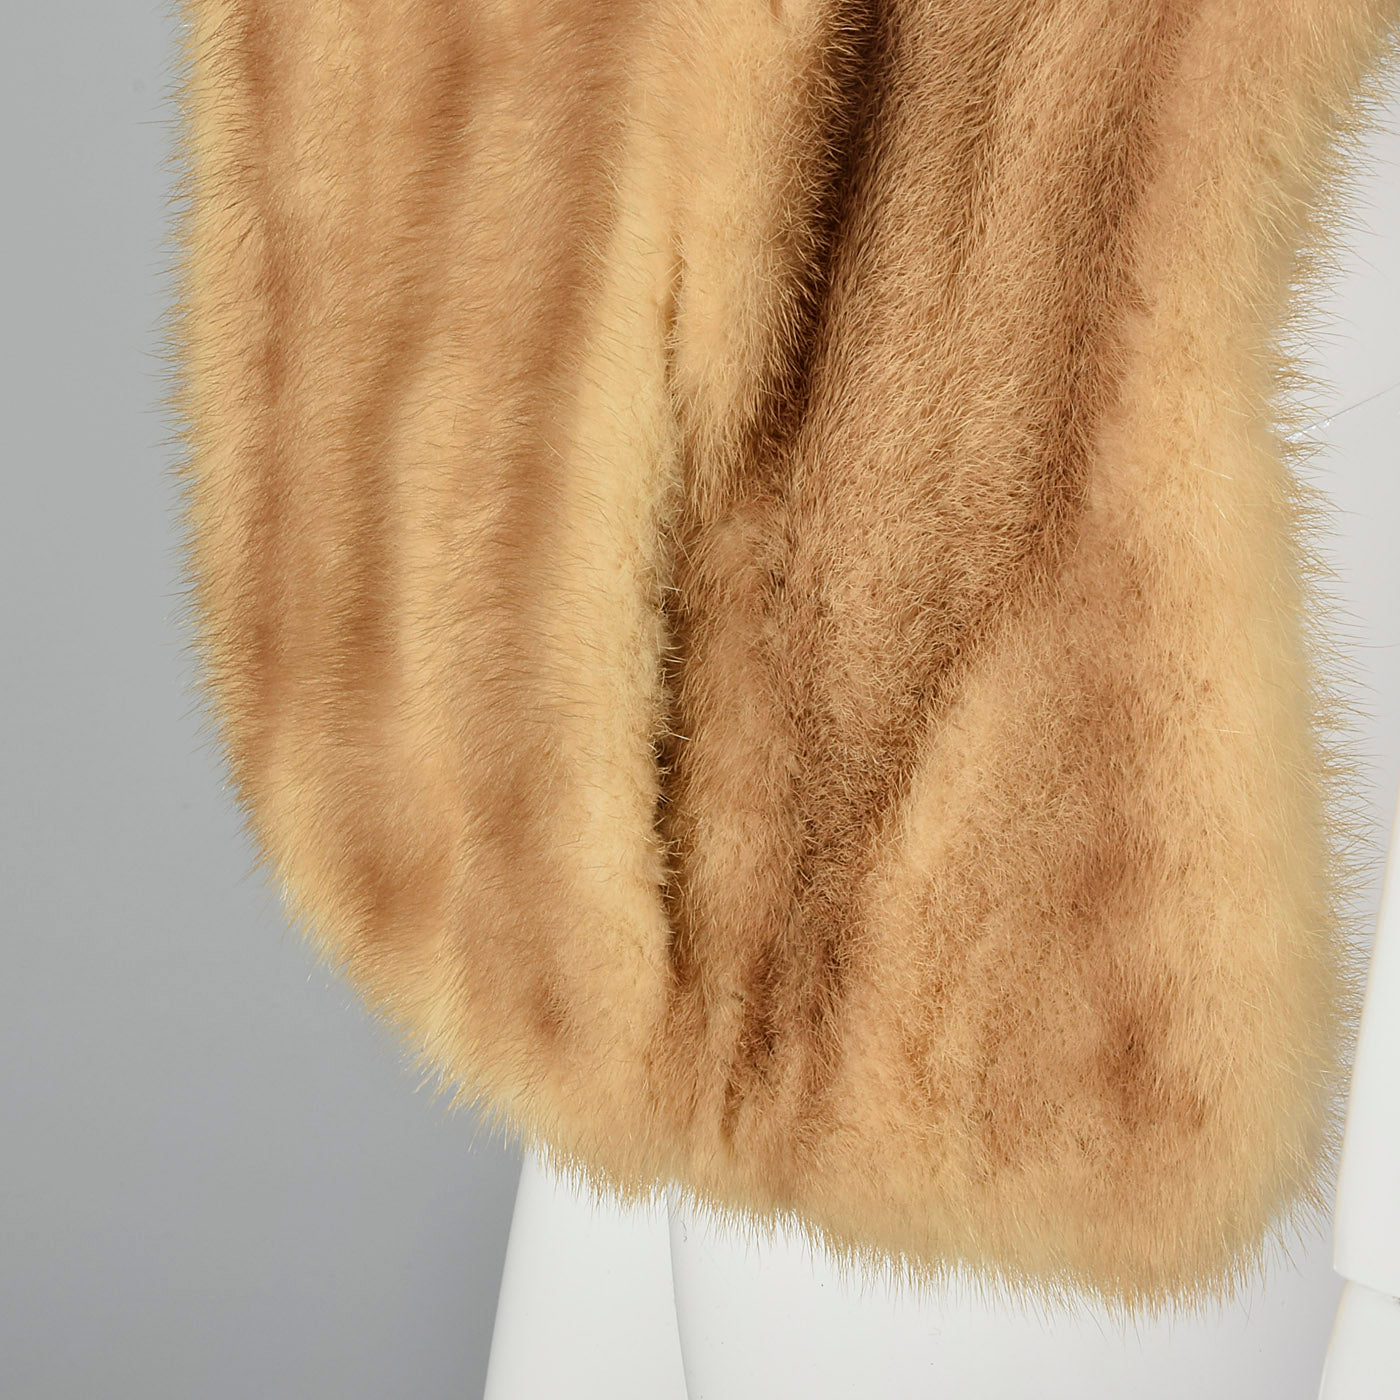 1960s Buff Mink Stole with Pockets